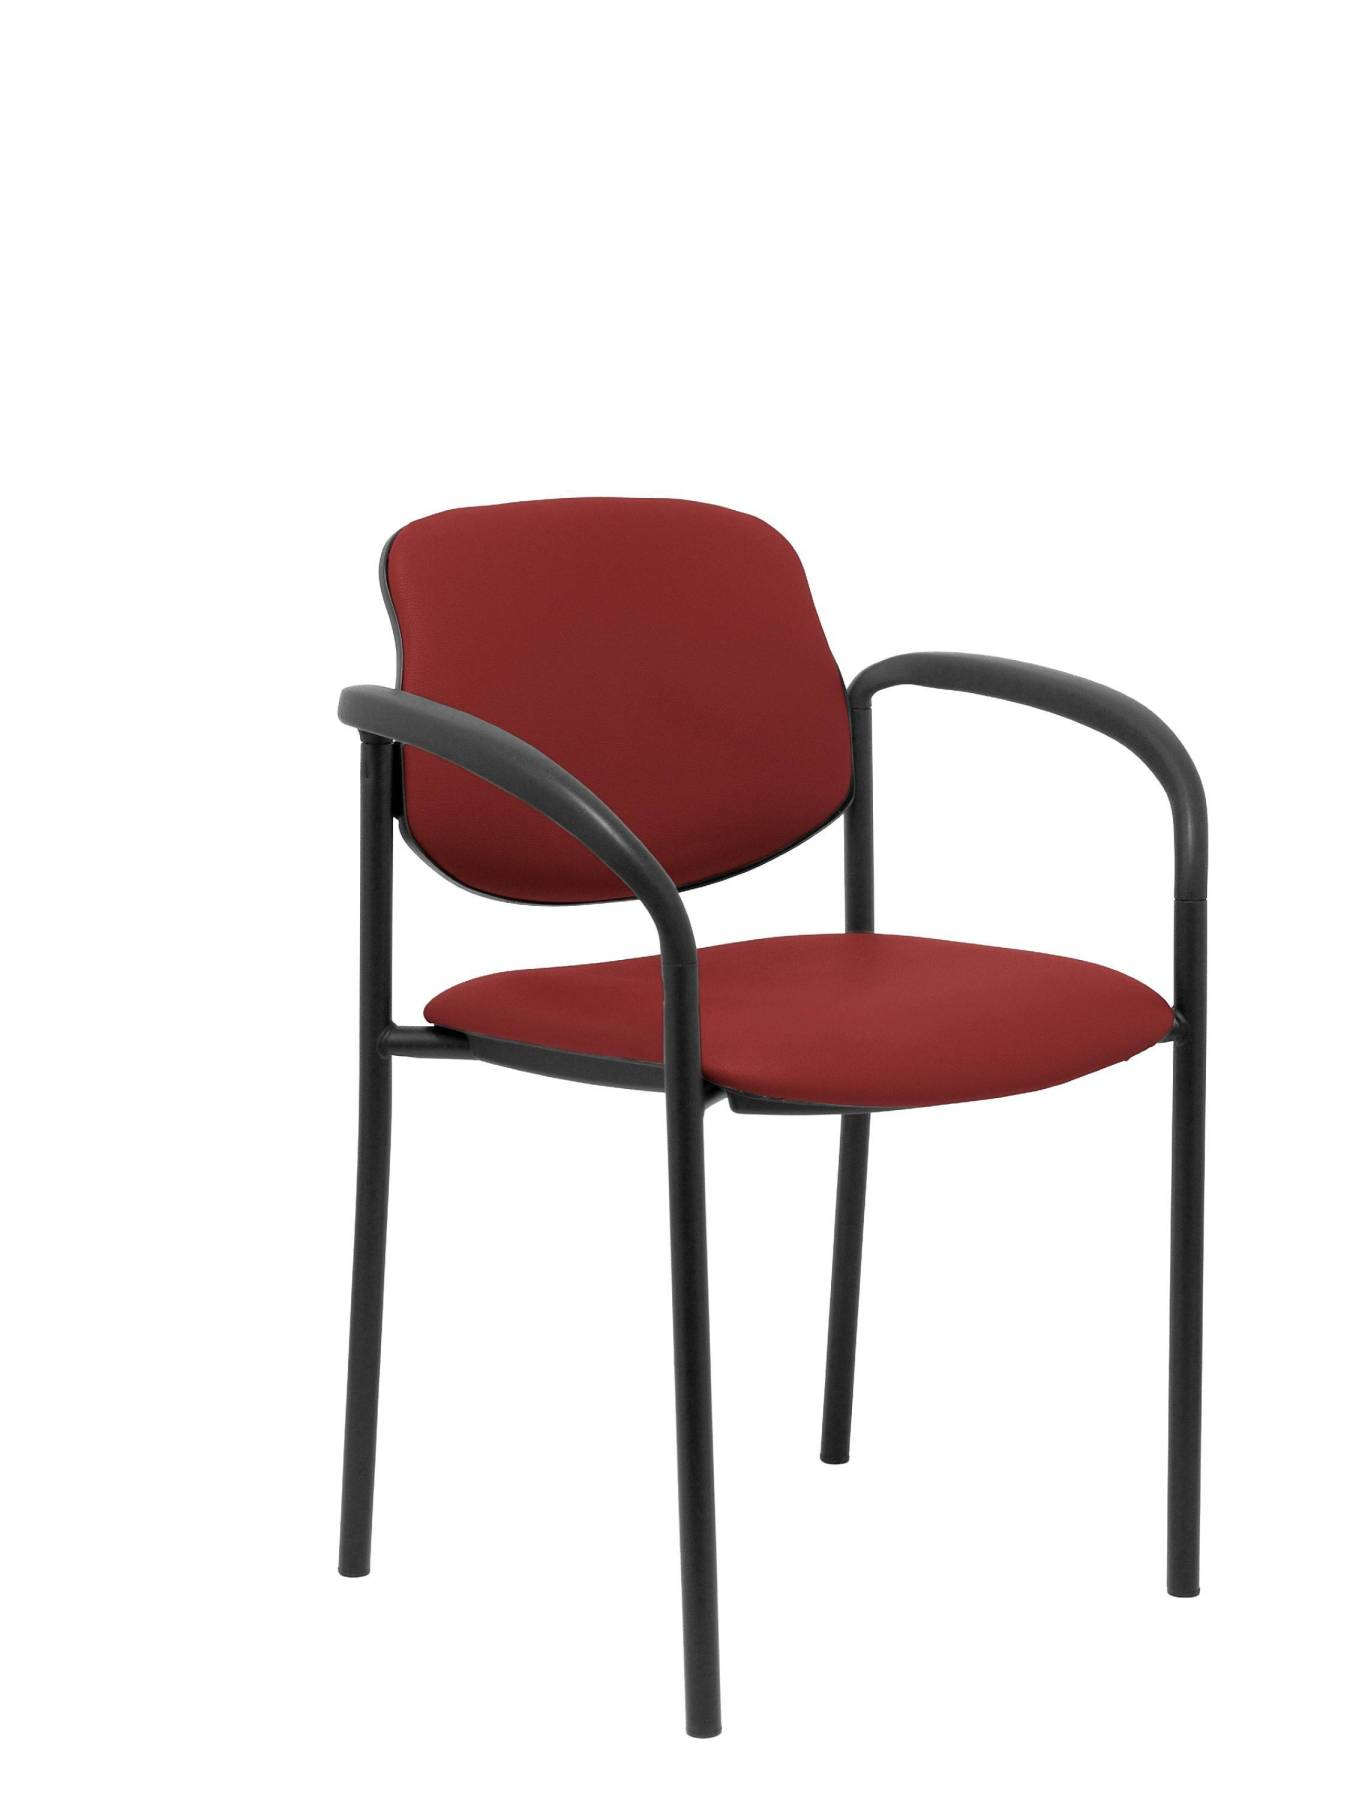 Visitor Chair 4's Topsy, With Arms And Estructrua Negro-up Seat And Backstop Upholstered In Tissue Similpiel Maroon PI